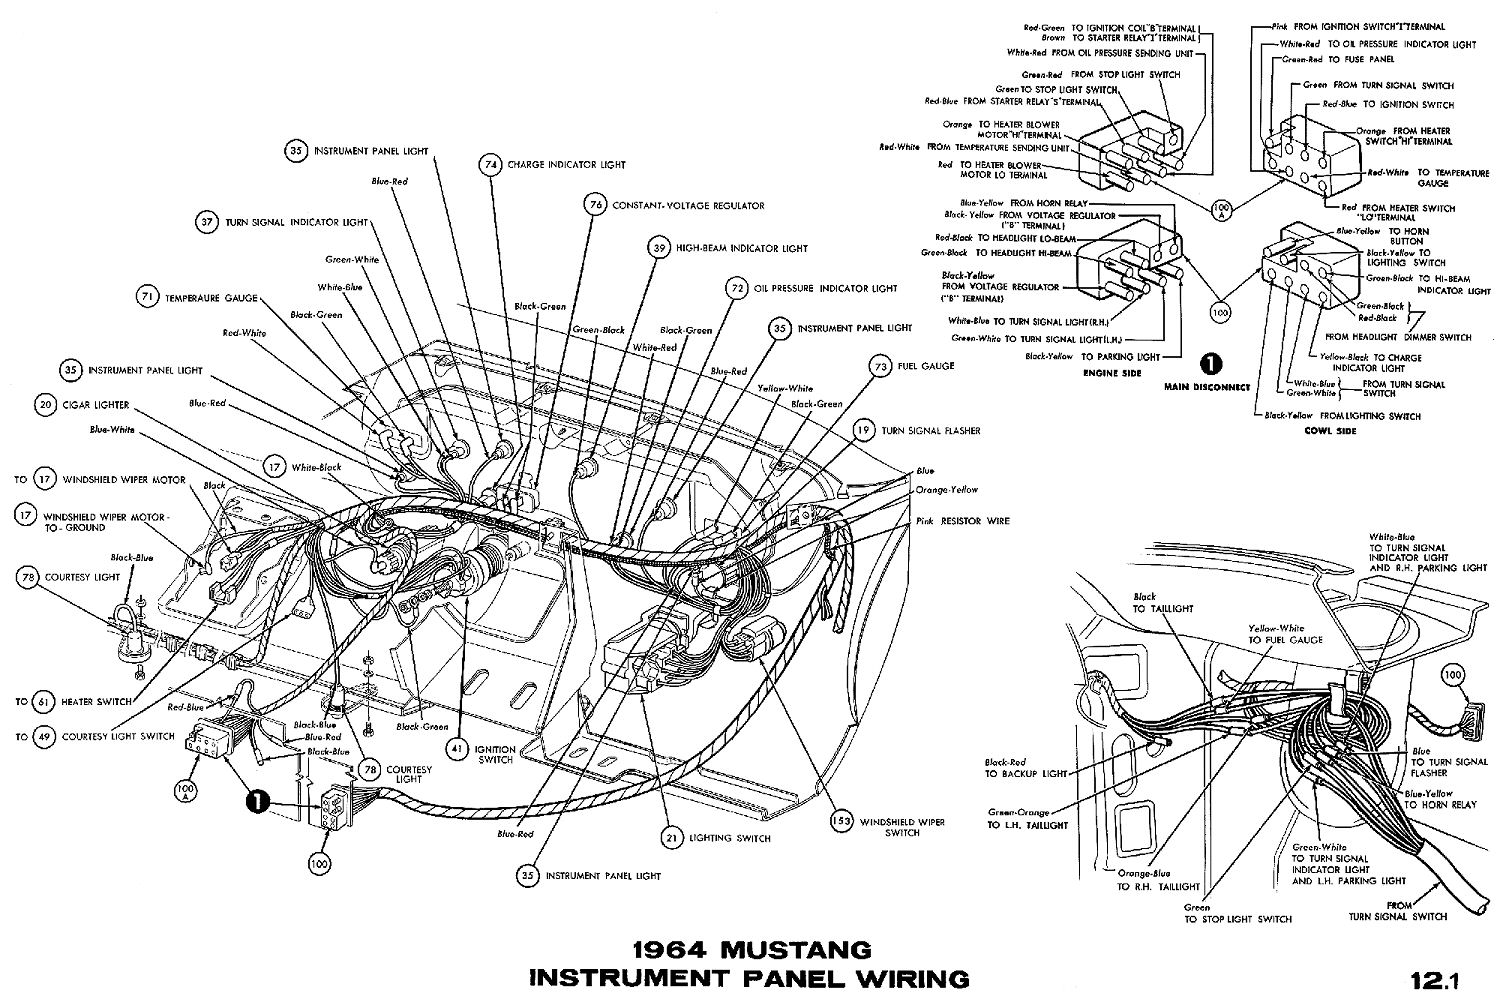 1965 Mustang Voltage Regulator Wiring Diagram Detailed Schematics Ford Alternator 1964 Diagrams Average Joe Restoration 1988